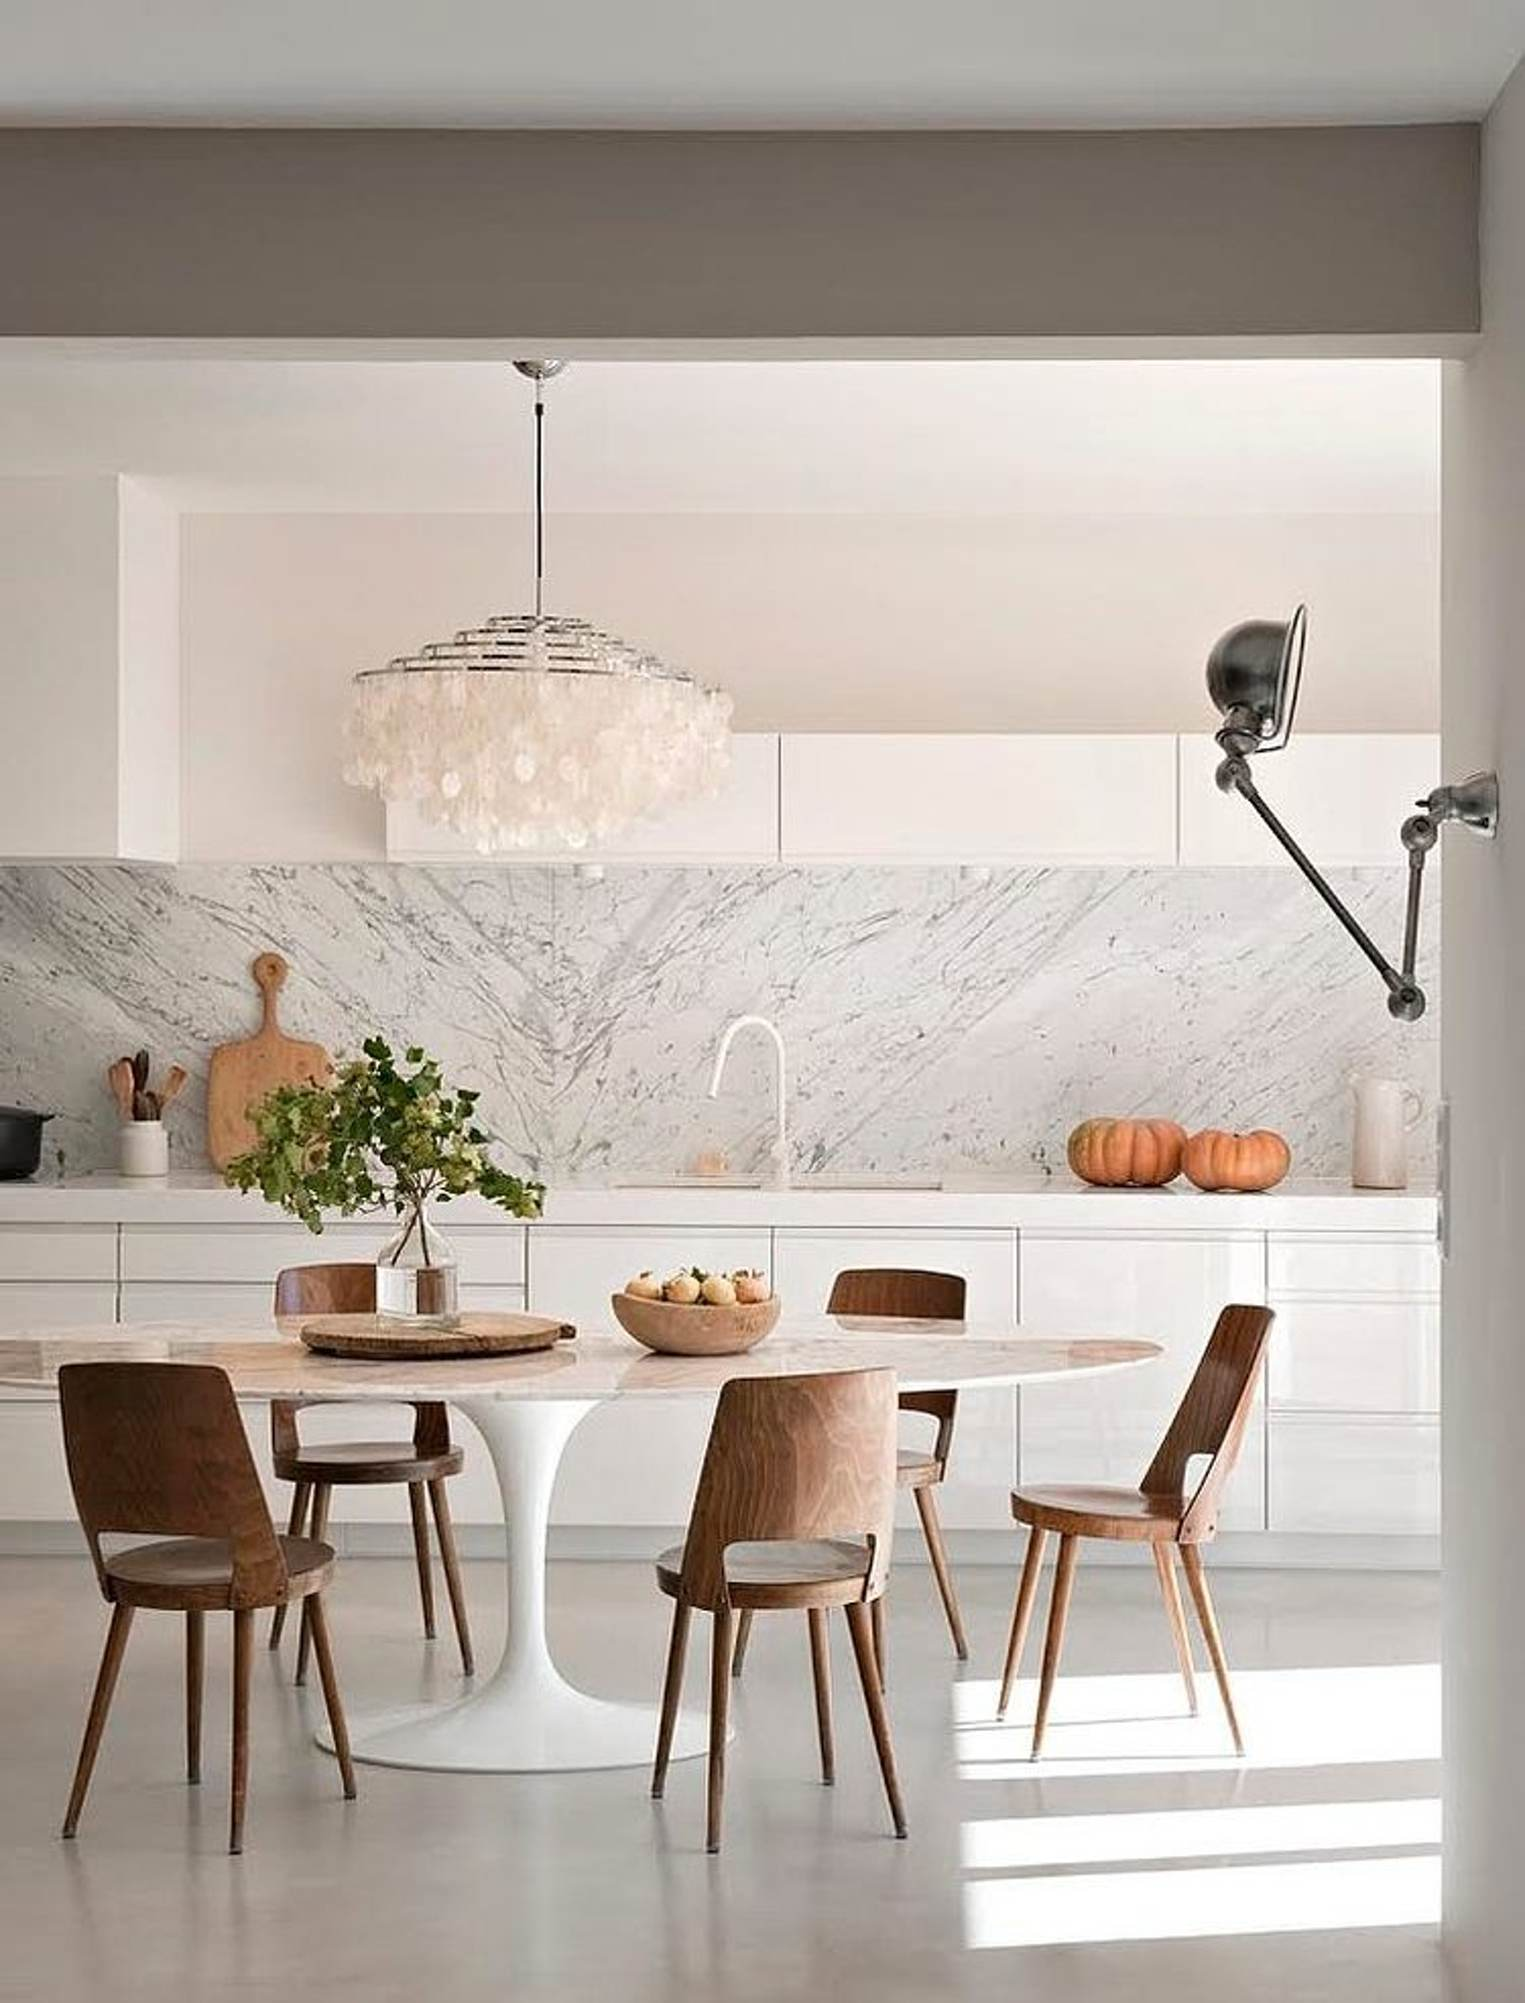 Mood Board The Perfect Basic Tone for Your Modern Home Decor 2 modern home decor Mood Board: The Perfect Basic Tone for Your Modern Home Decor Mood Board The Perfect Basic Tone for Your Modern Home Decor 2